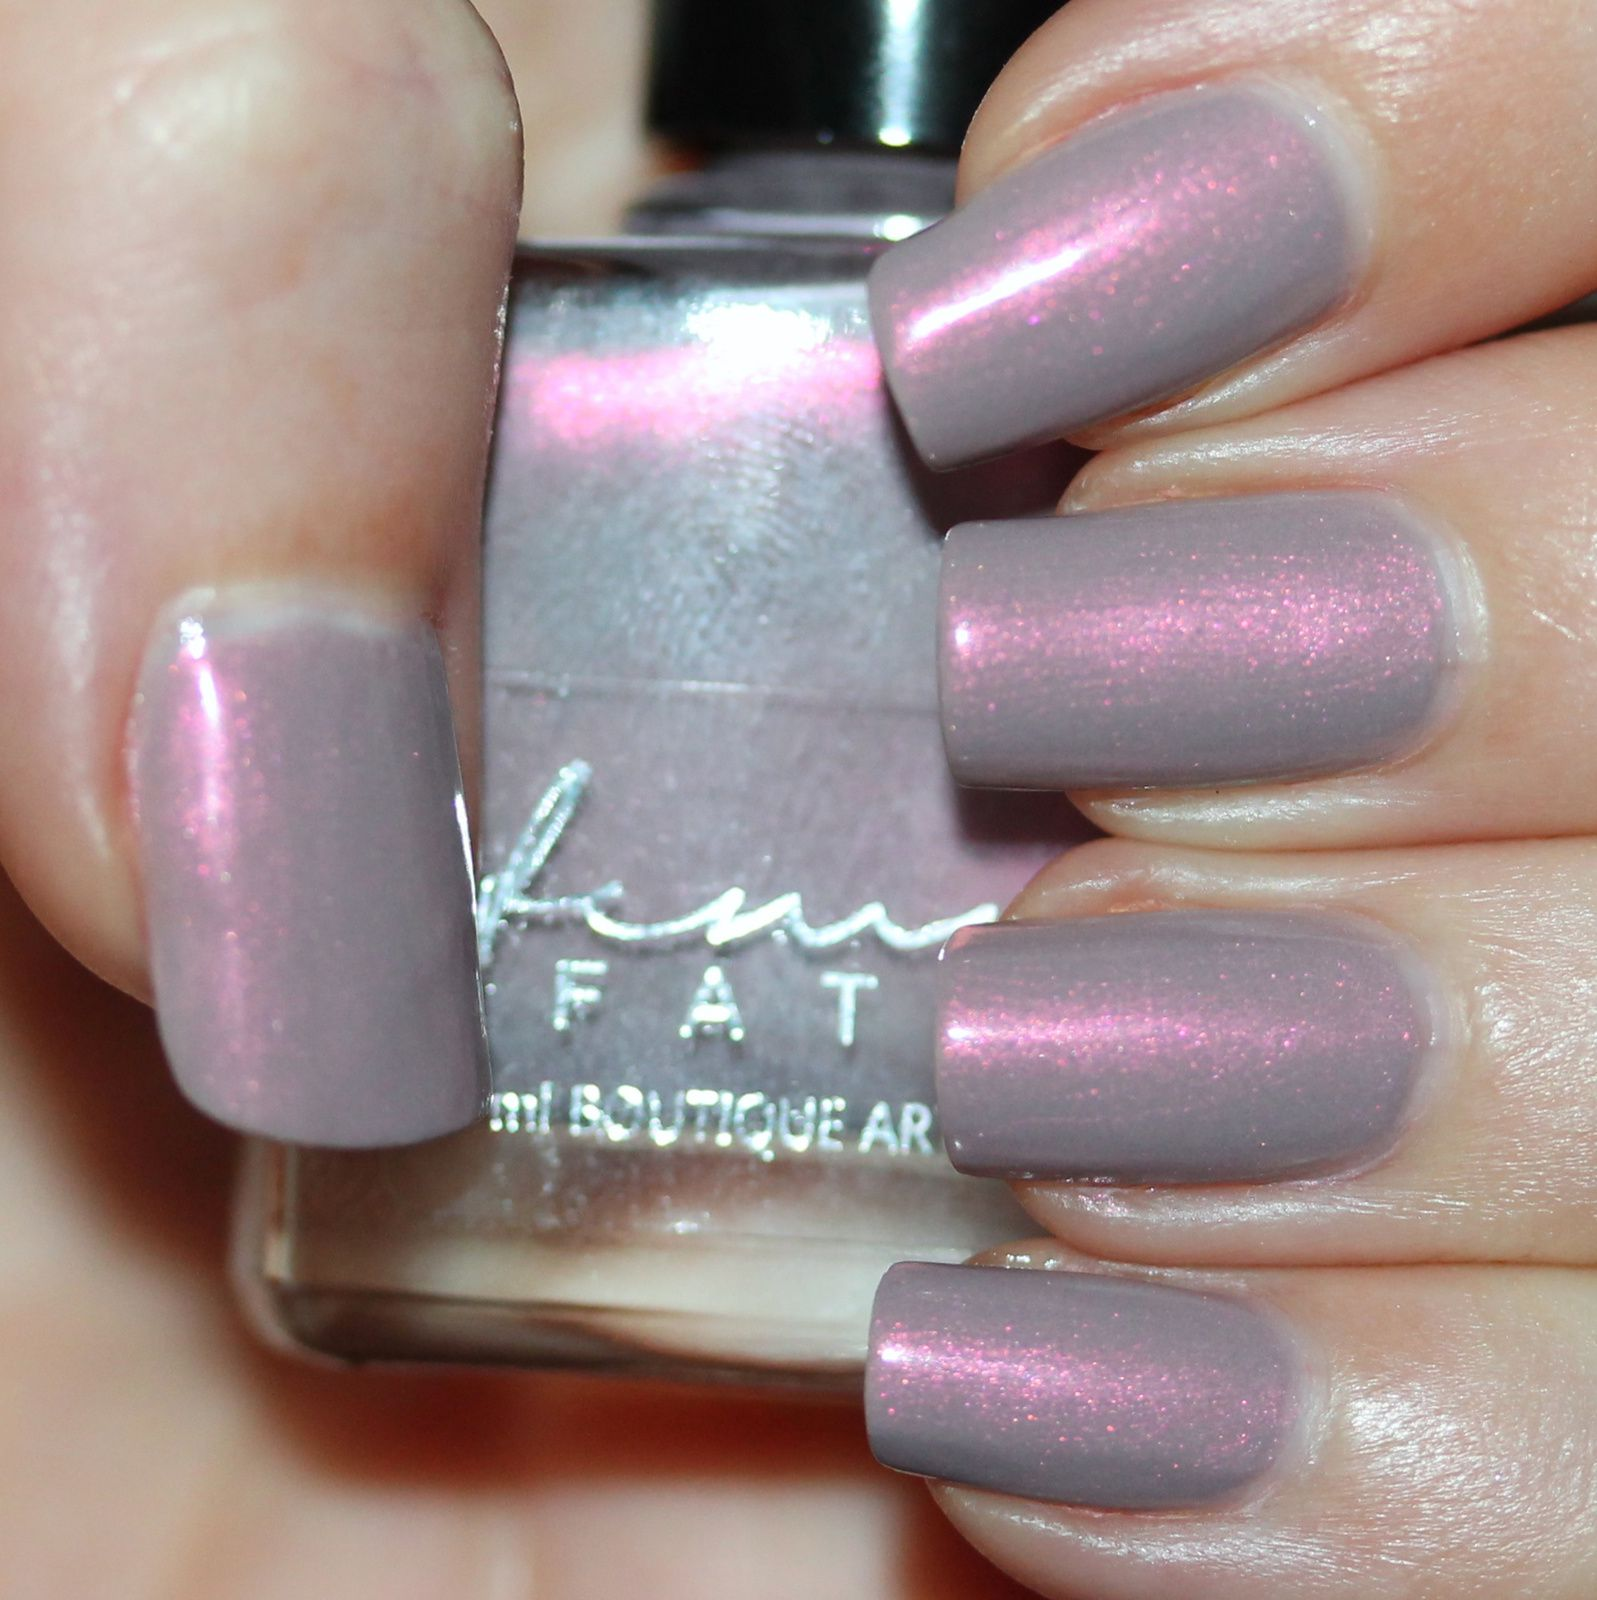 Femme Fatale 2084 (3 coats, not top coat)